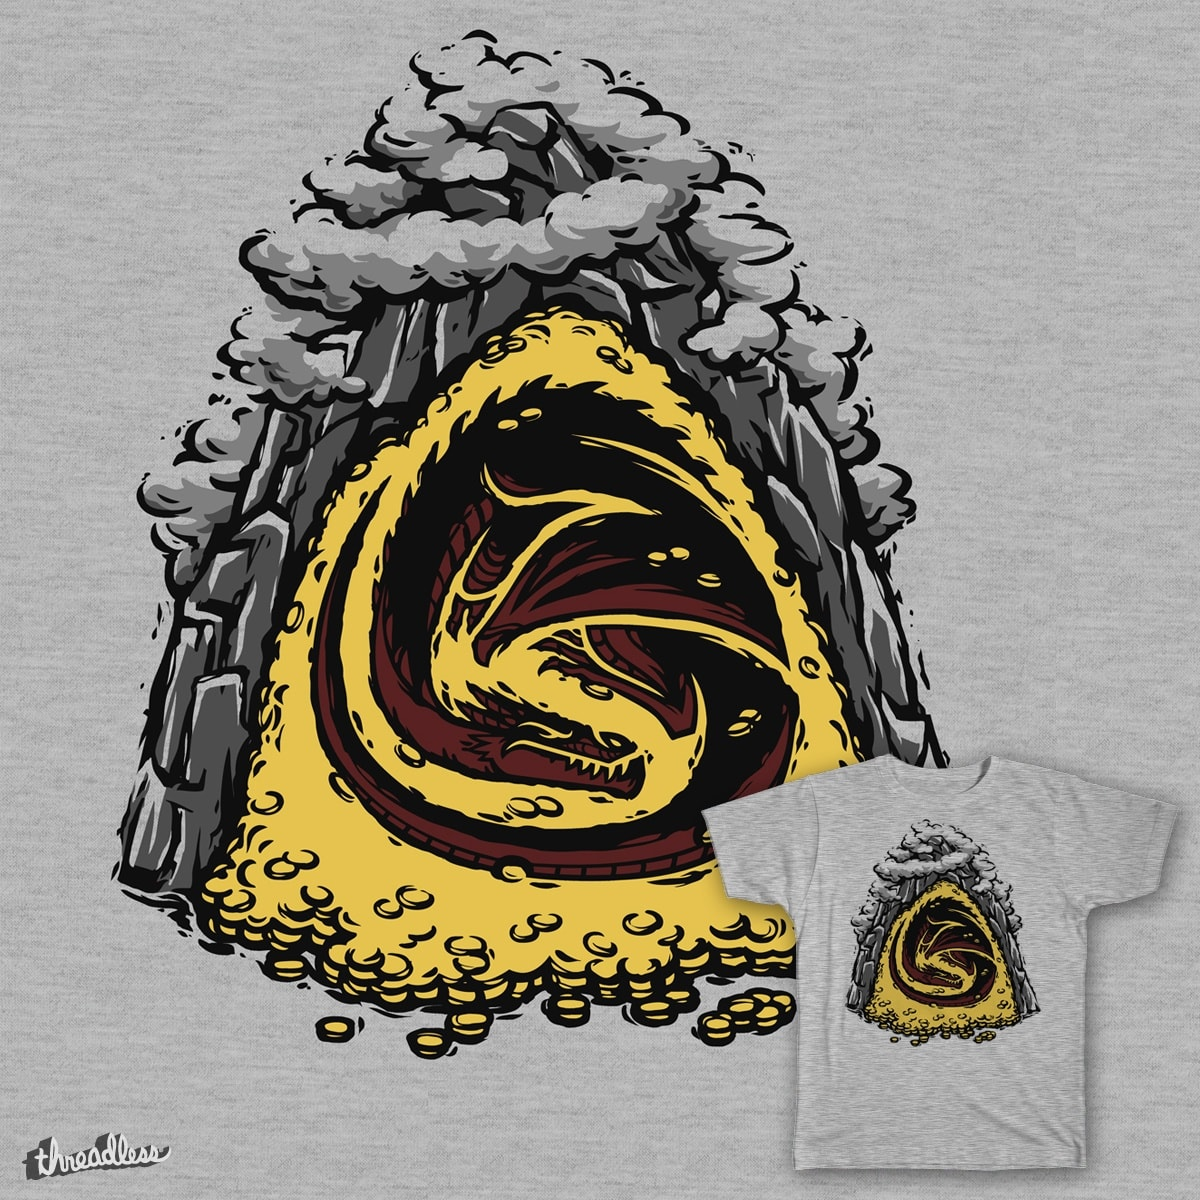 Within the Lonely Mountain by Versiris on Threadless